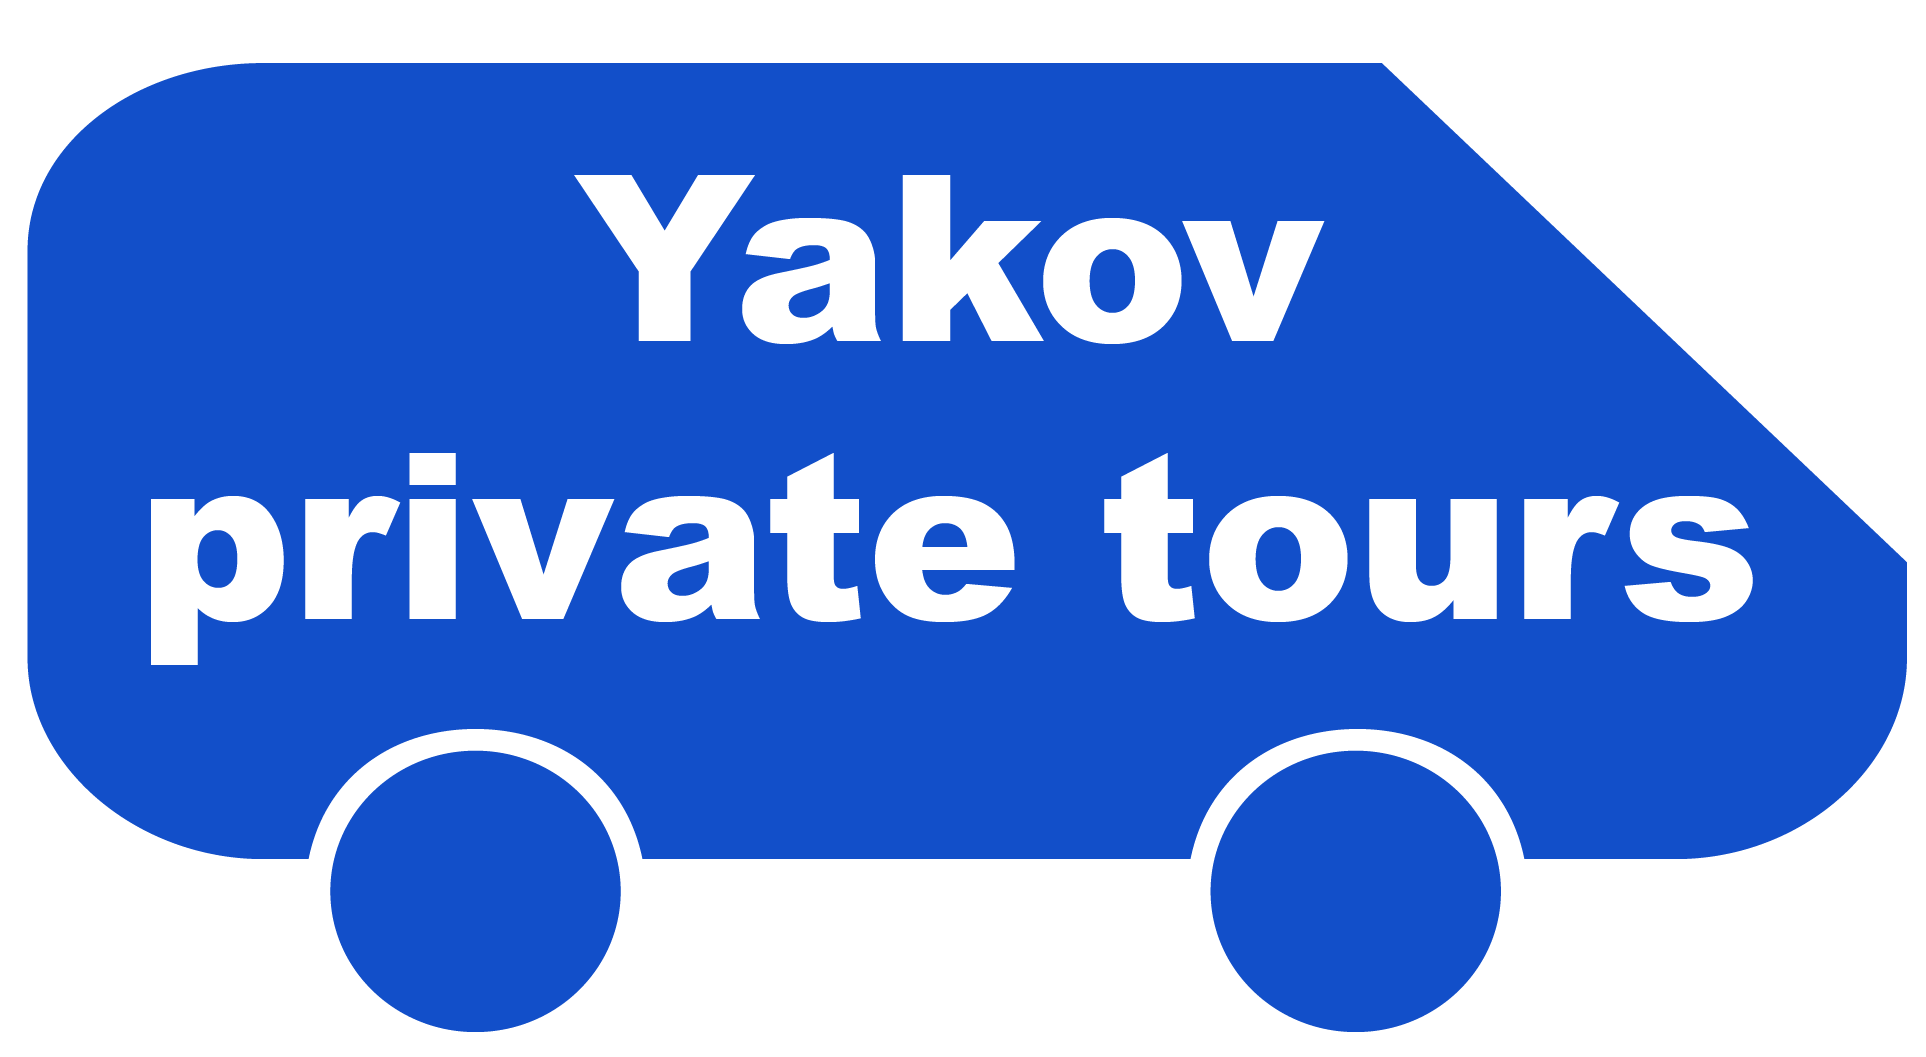 Yakov Private tours in Israel